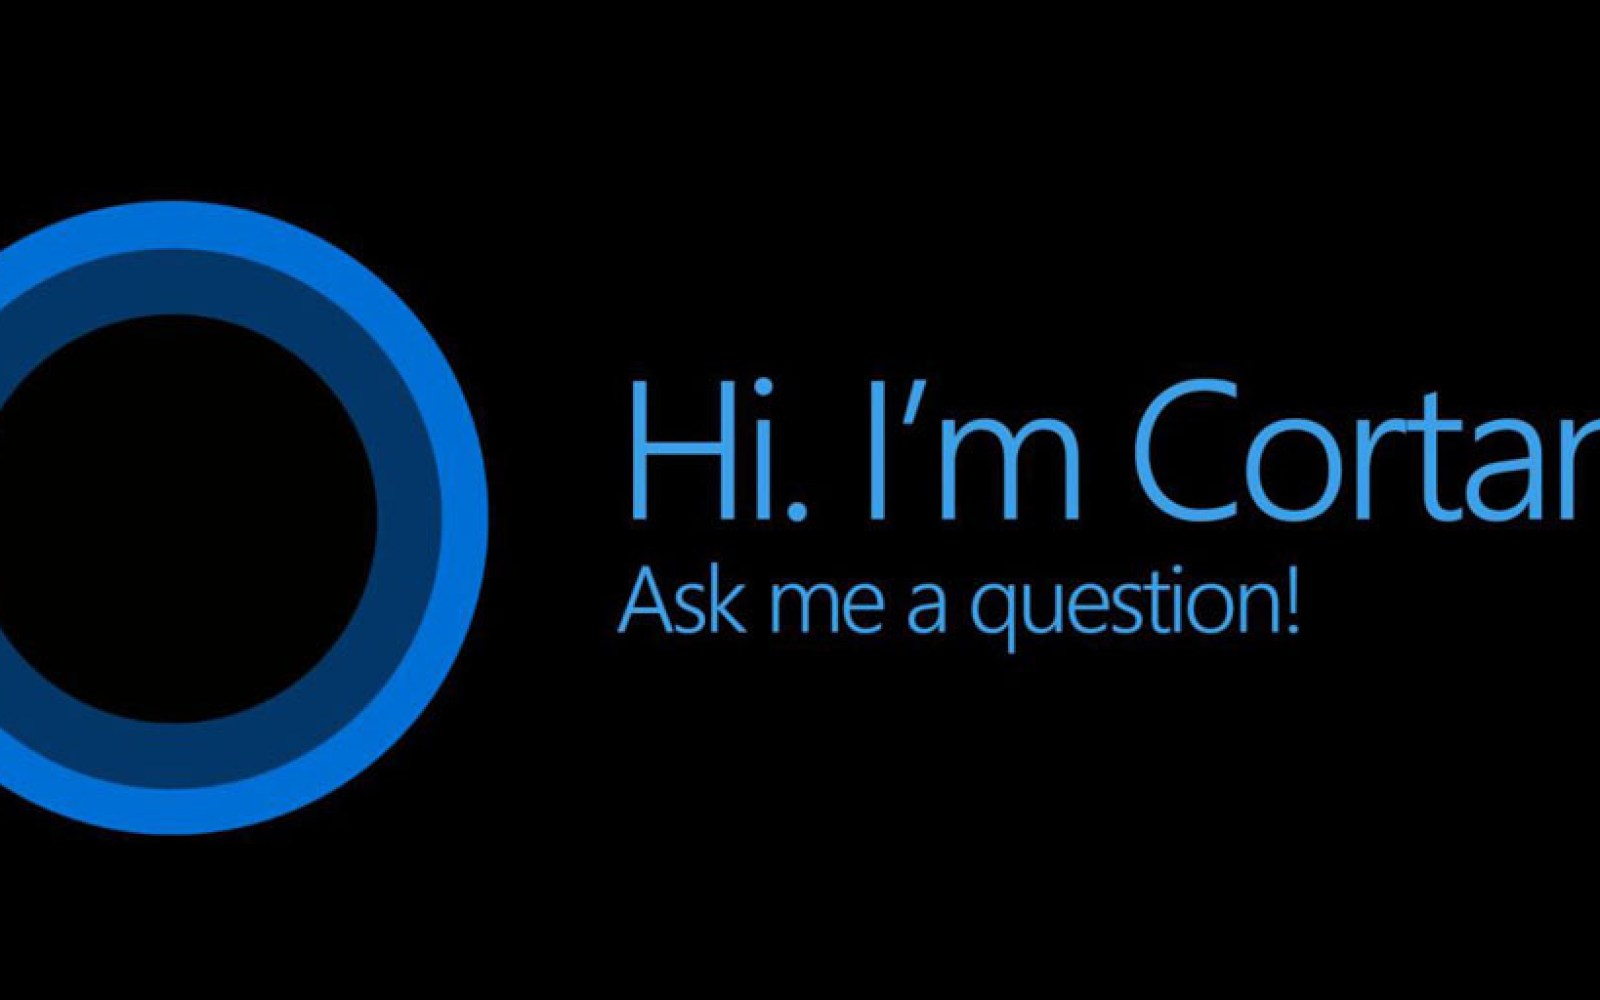 Cortana for Android now mirrors notifications on Windows 10 PCs for beta testers